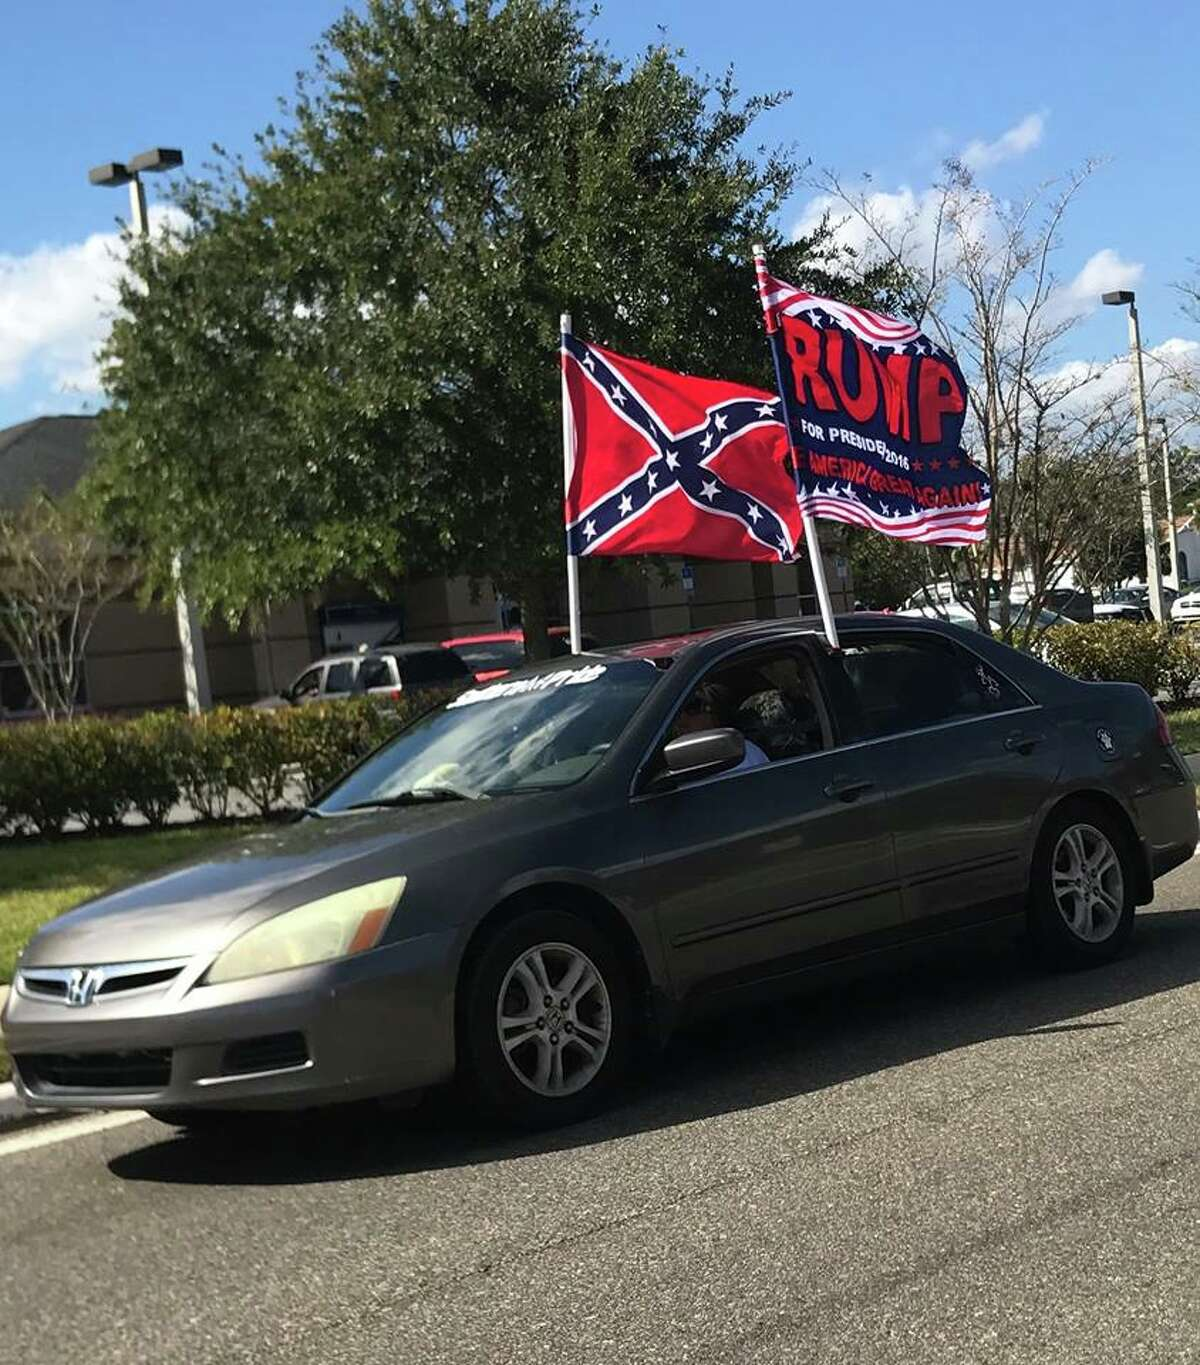 Supporters of GOP presidential nominee Donald J. Trump flew the Confederate battle flag and